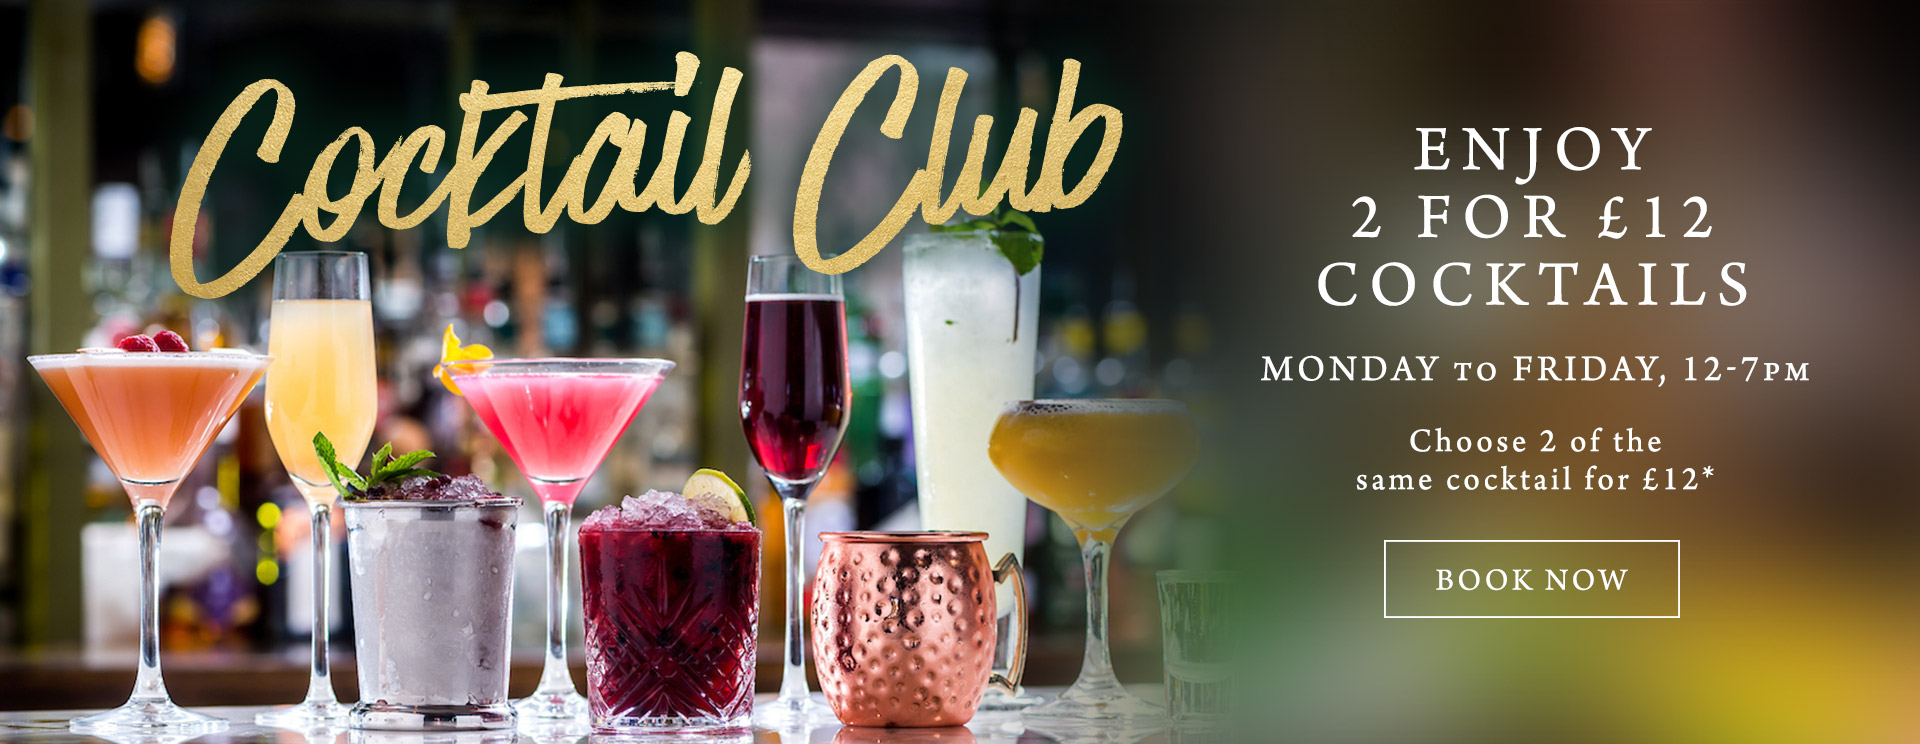 2 for £12 cocktails at The Hawk